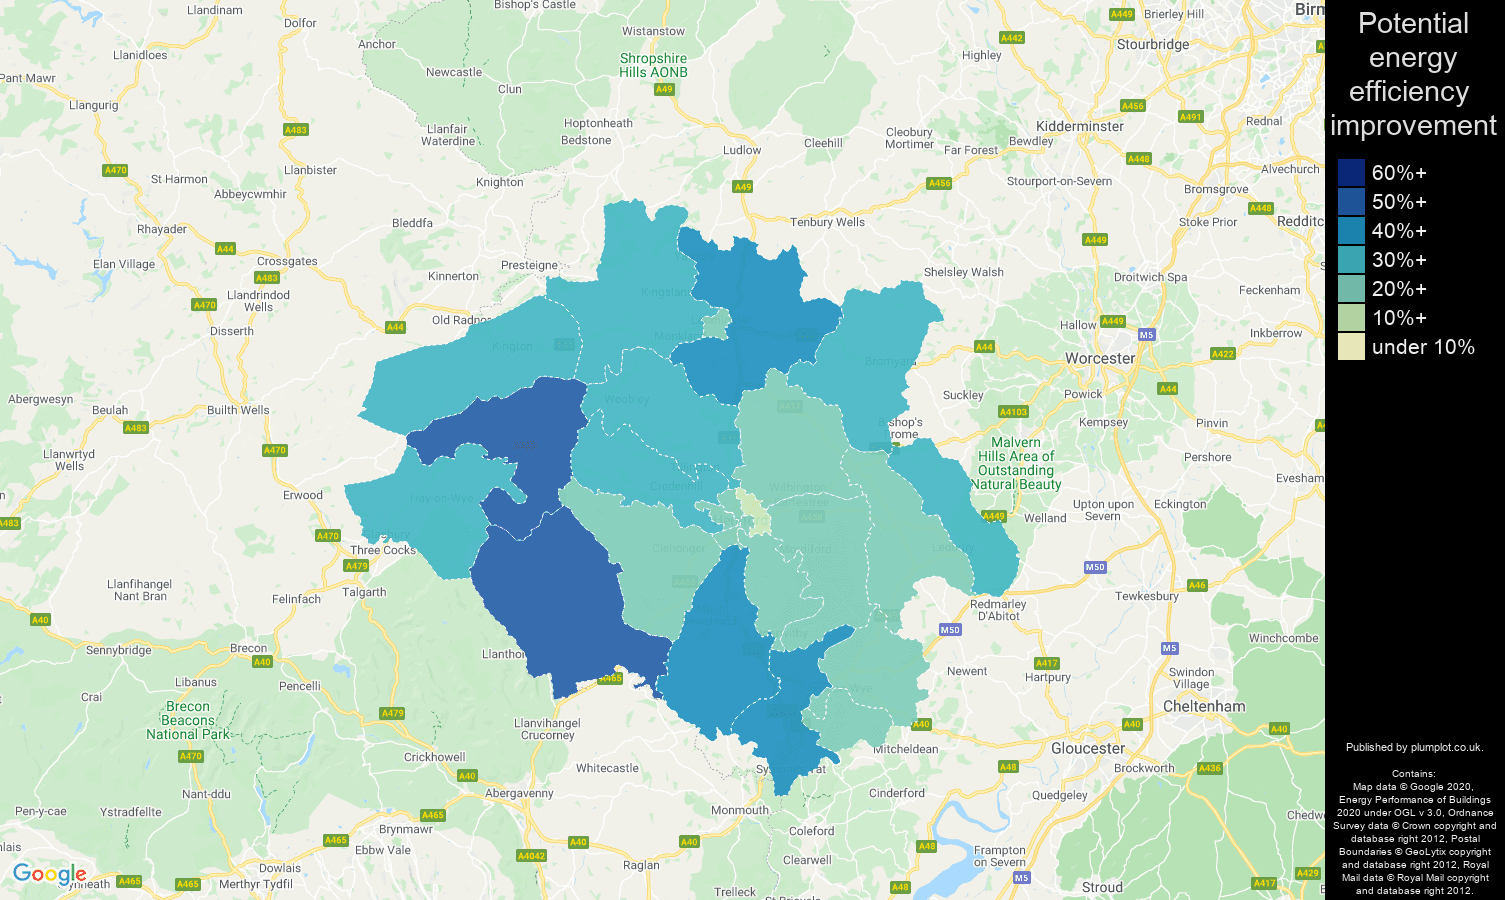 Hereford map of potential energy efficiency improvement of houses